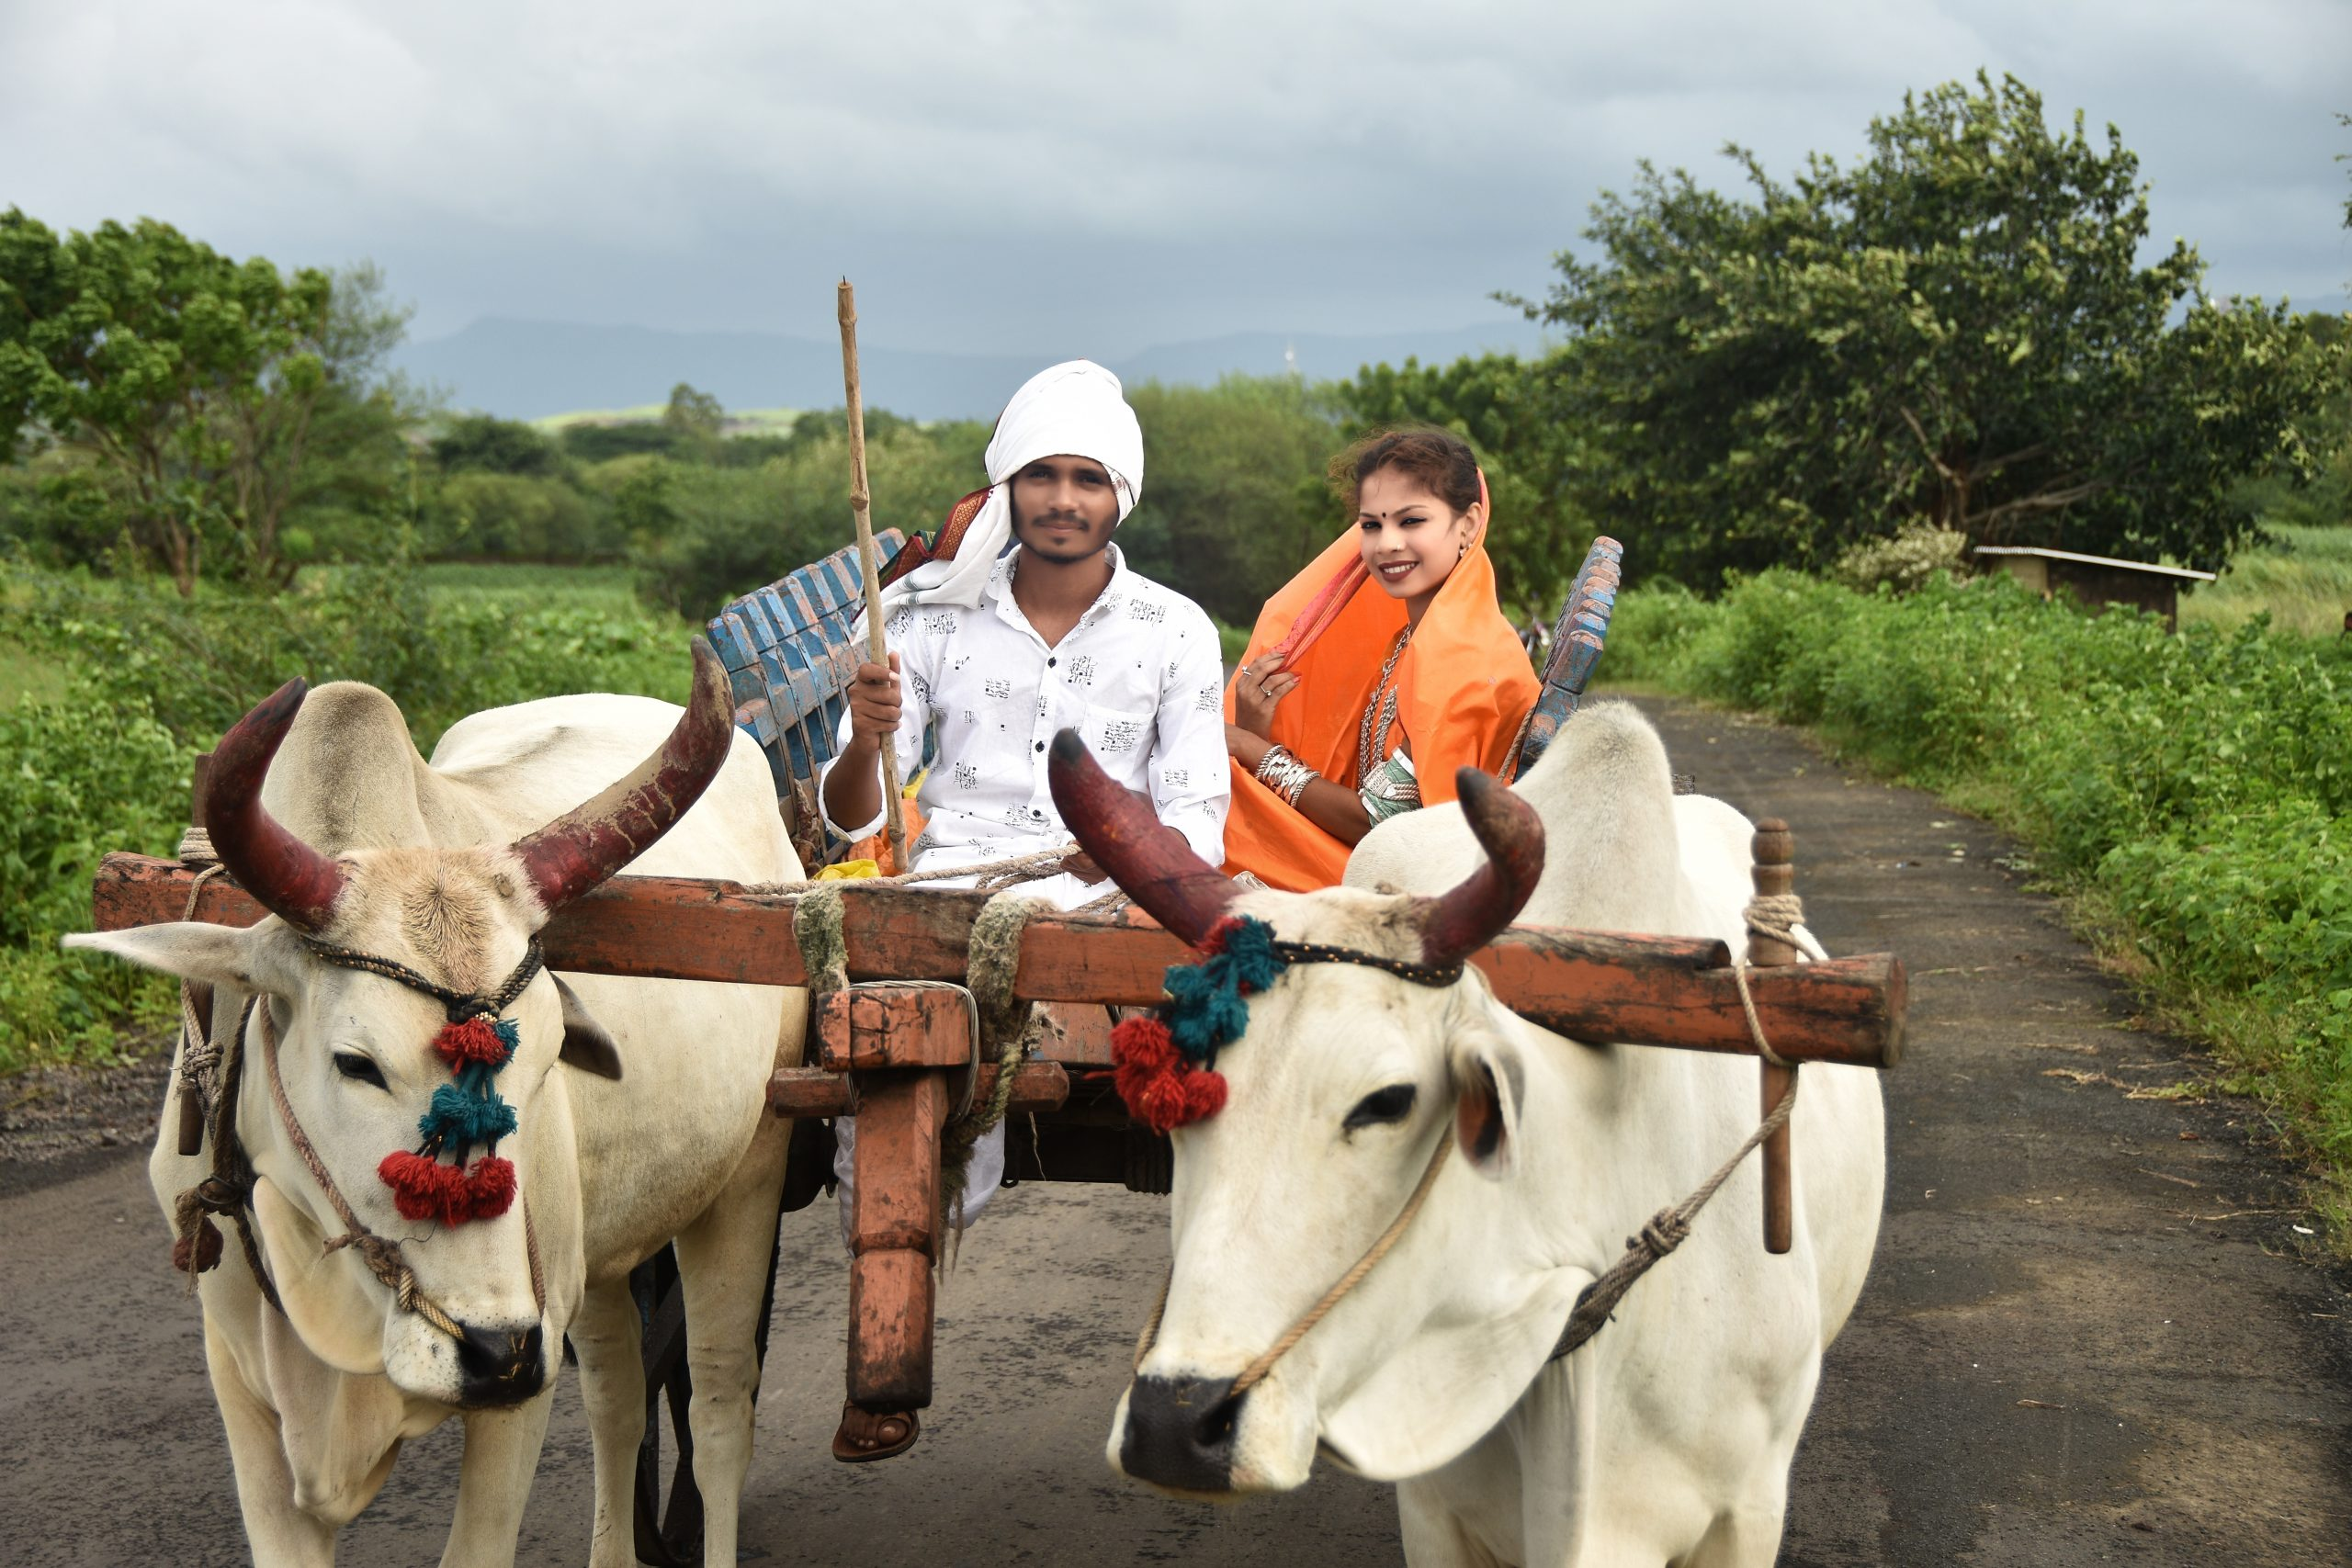 A village couple traveling on oxcart